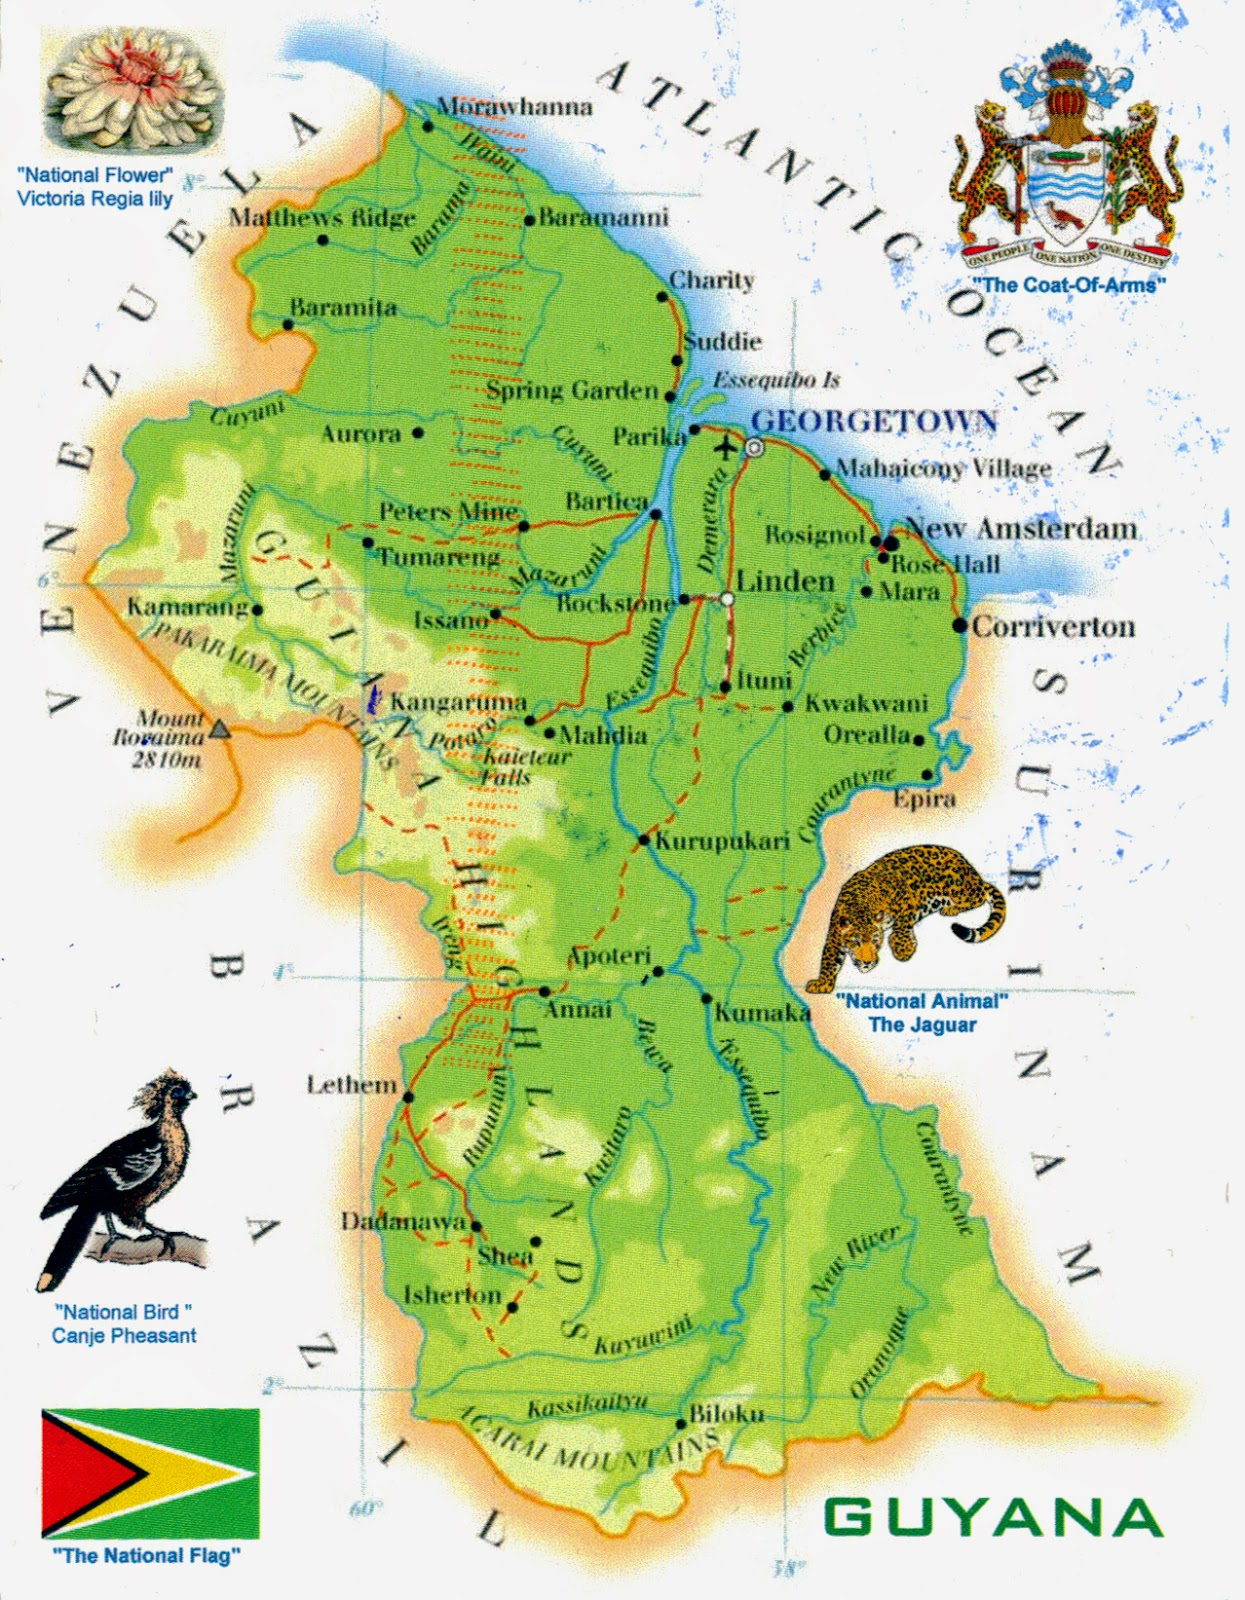 World Come To My Home 1022 1472 Guyana The Map And The Flag Of